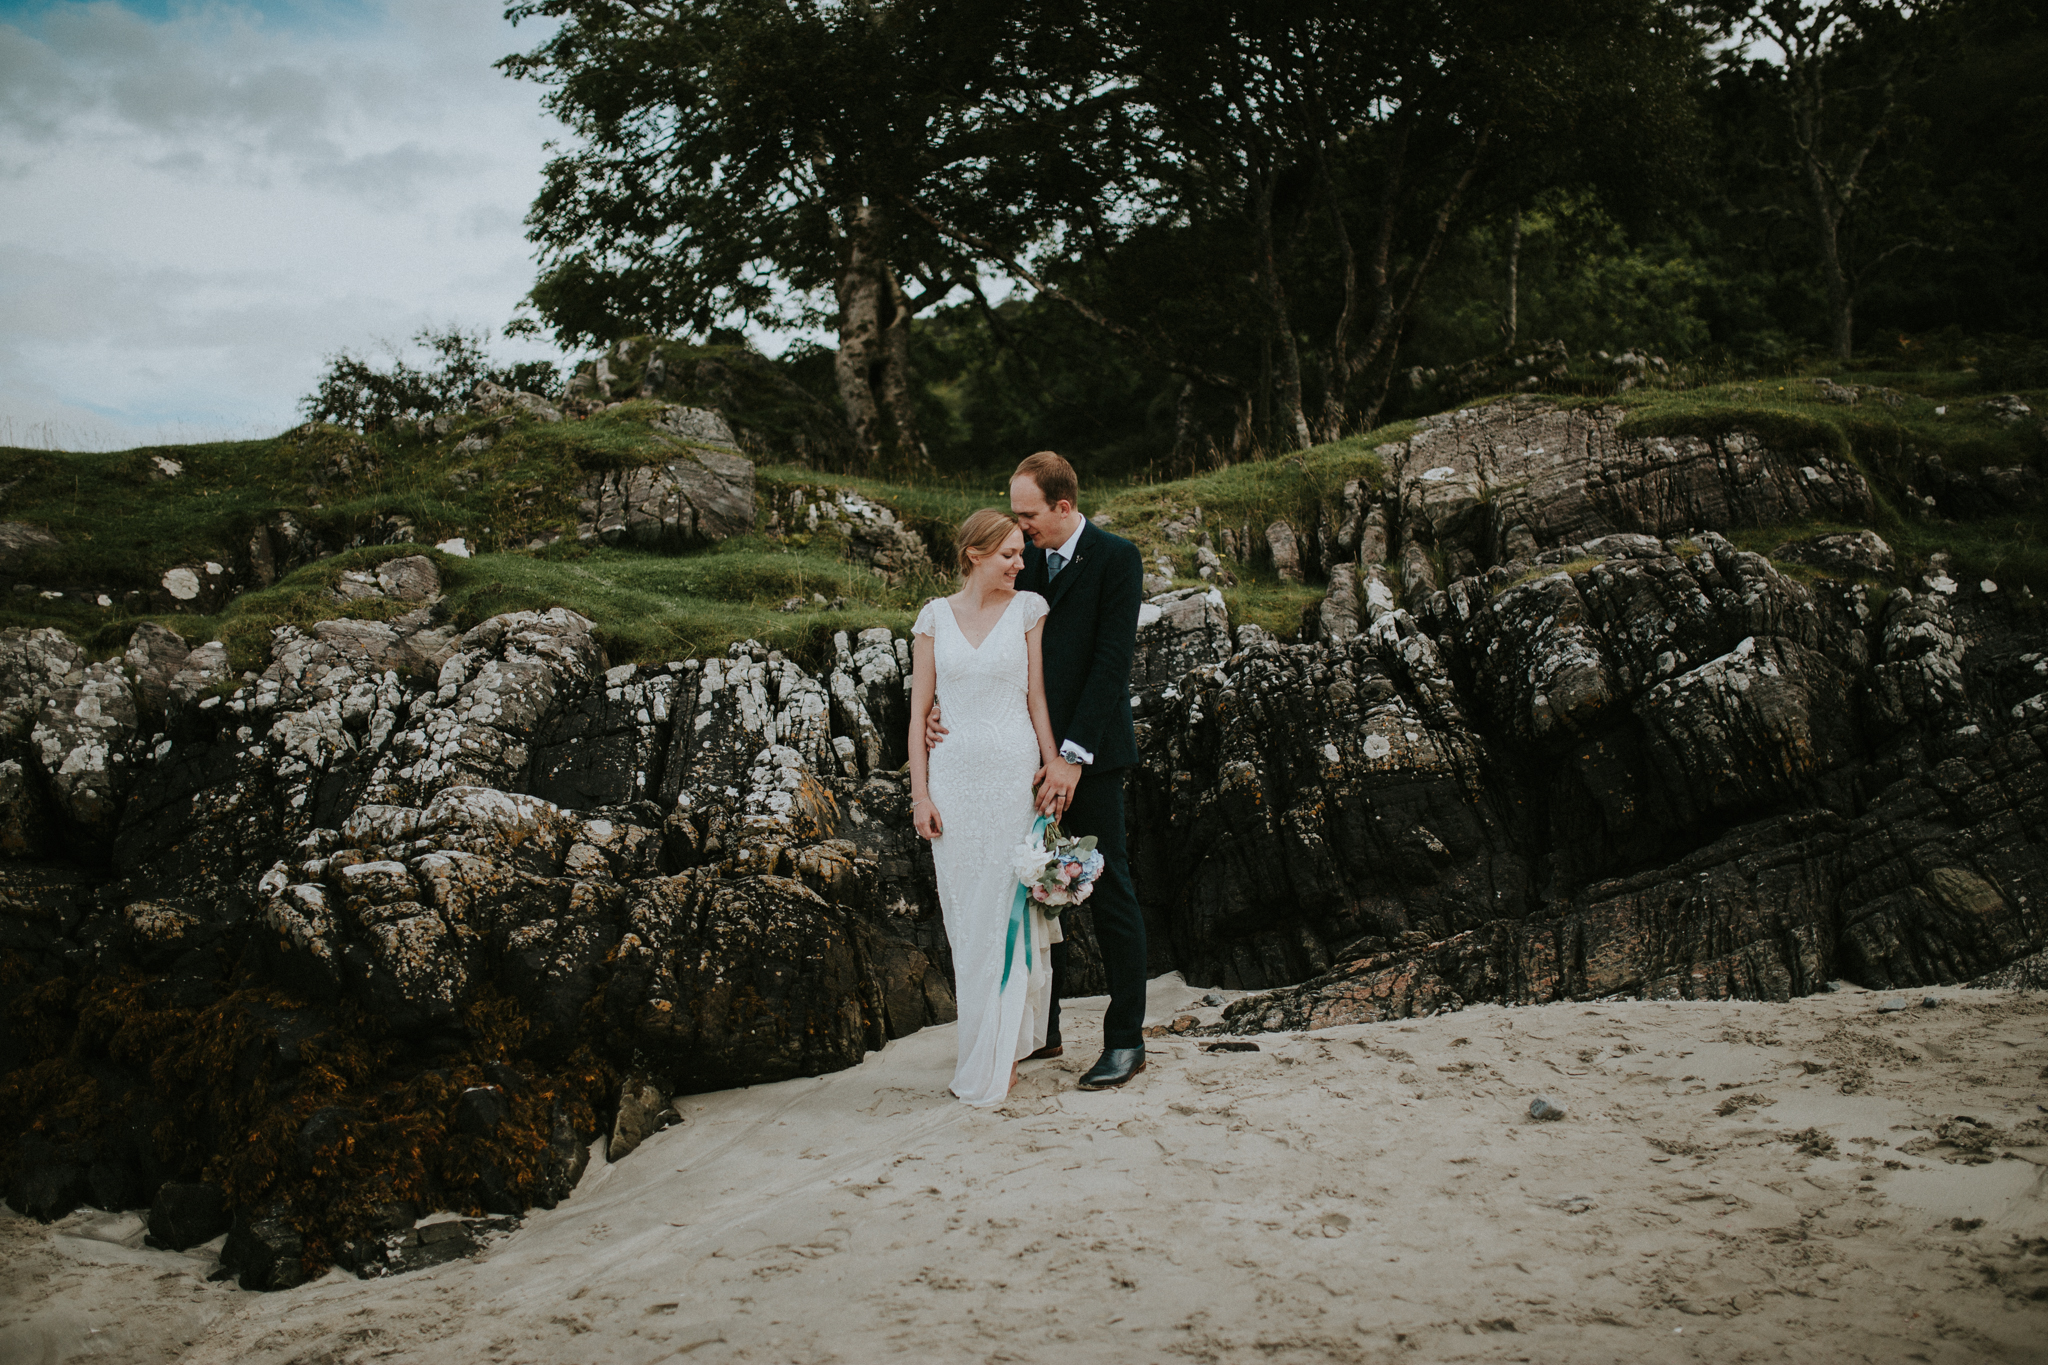 The wedding couple is standing at the beach next to some rocks and trees.